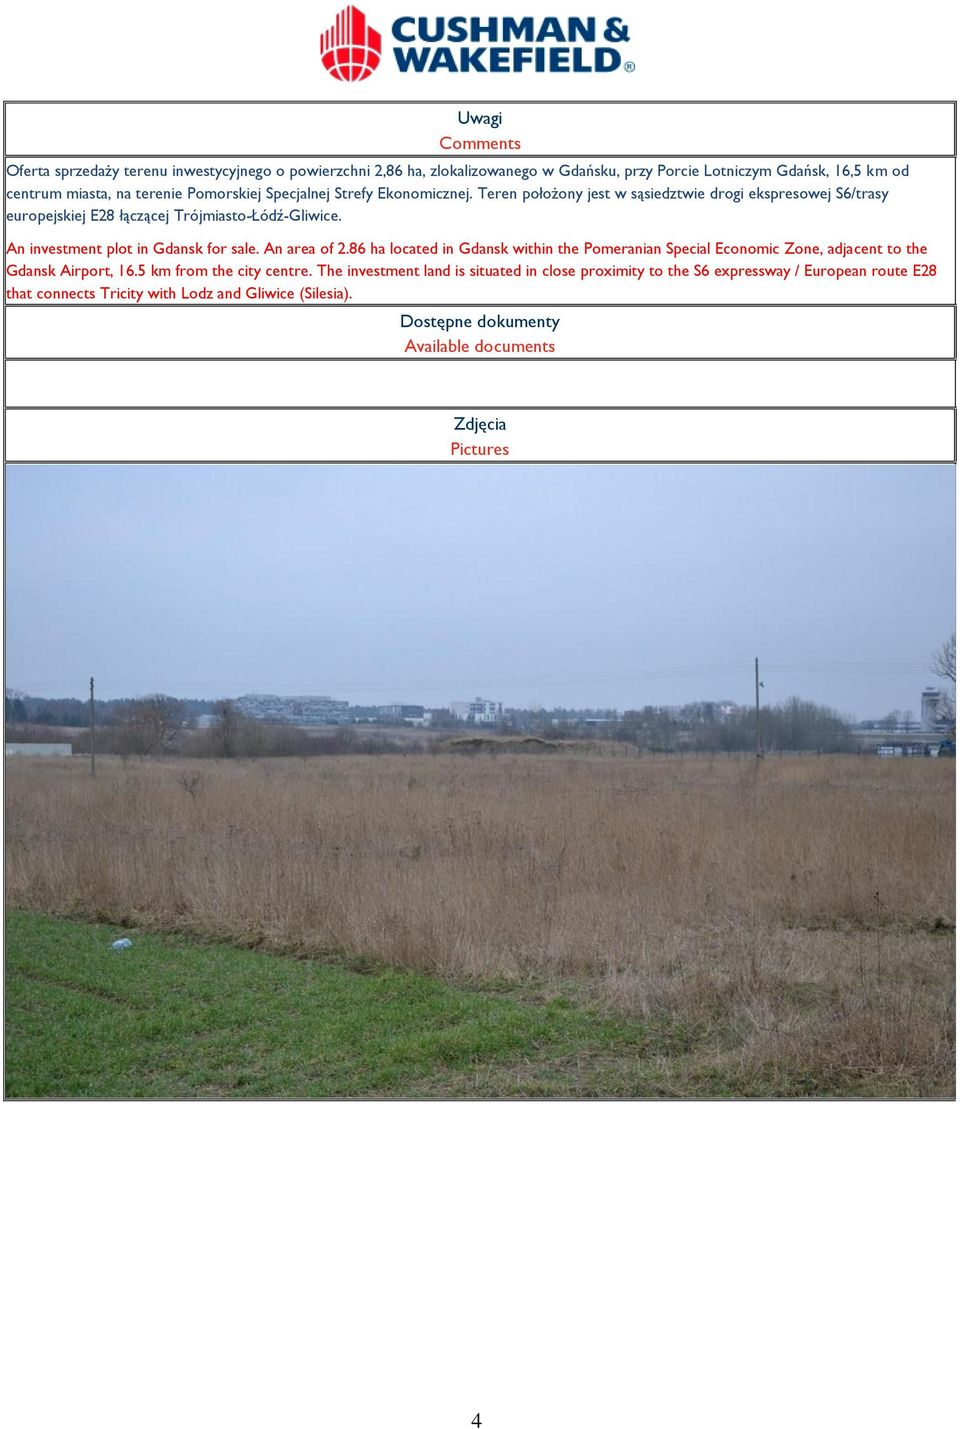 An investment plot in Gdansk for sale. An area of 2.86 ha located in Gdansk within the Pomeranian Special Economic Zone, adjacent to the Gdansk Airport, 16.